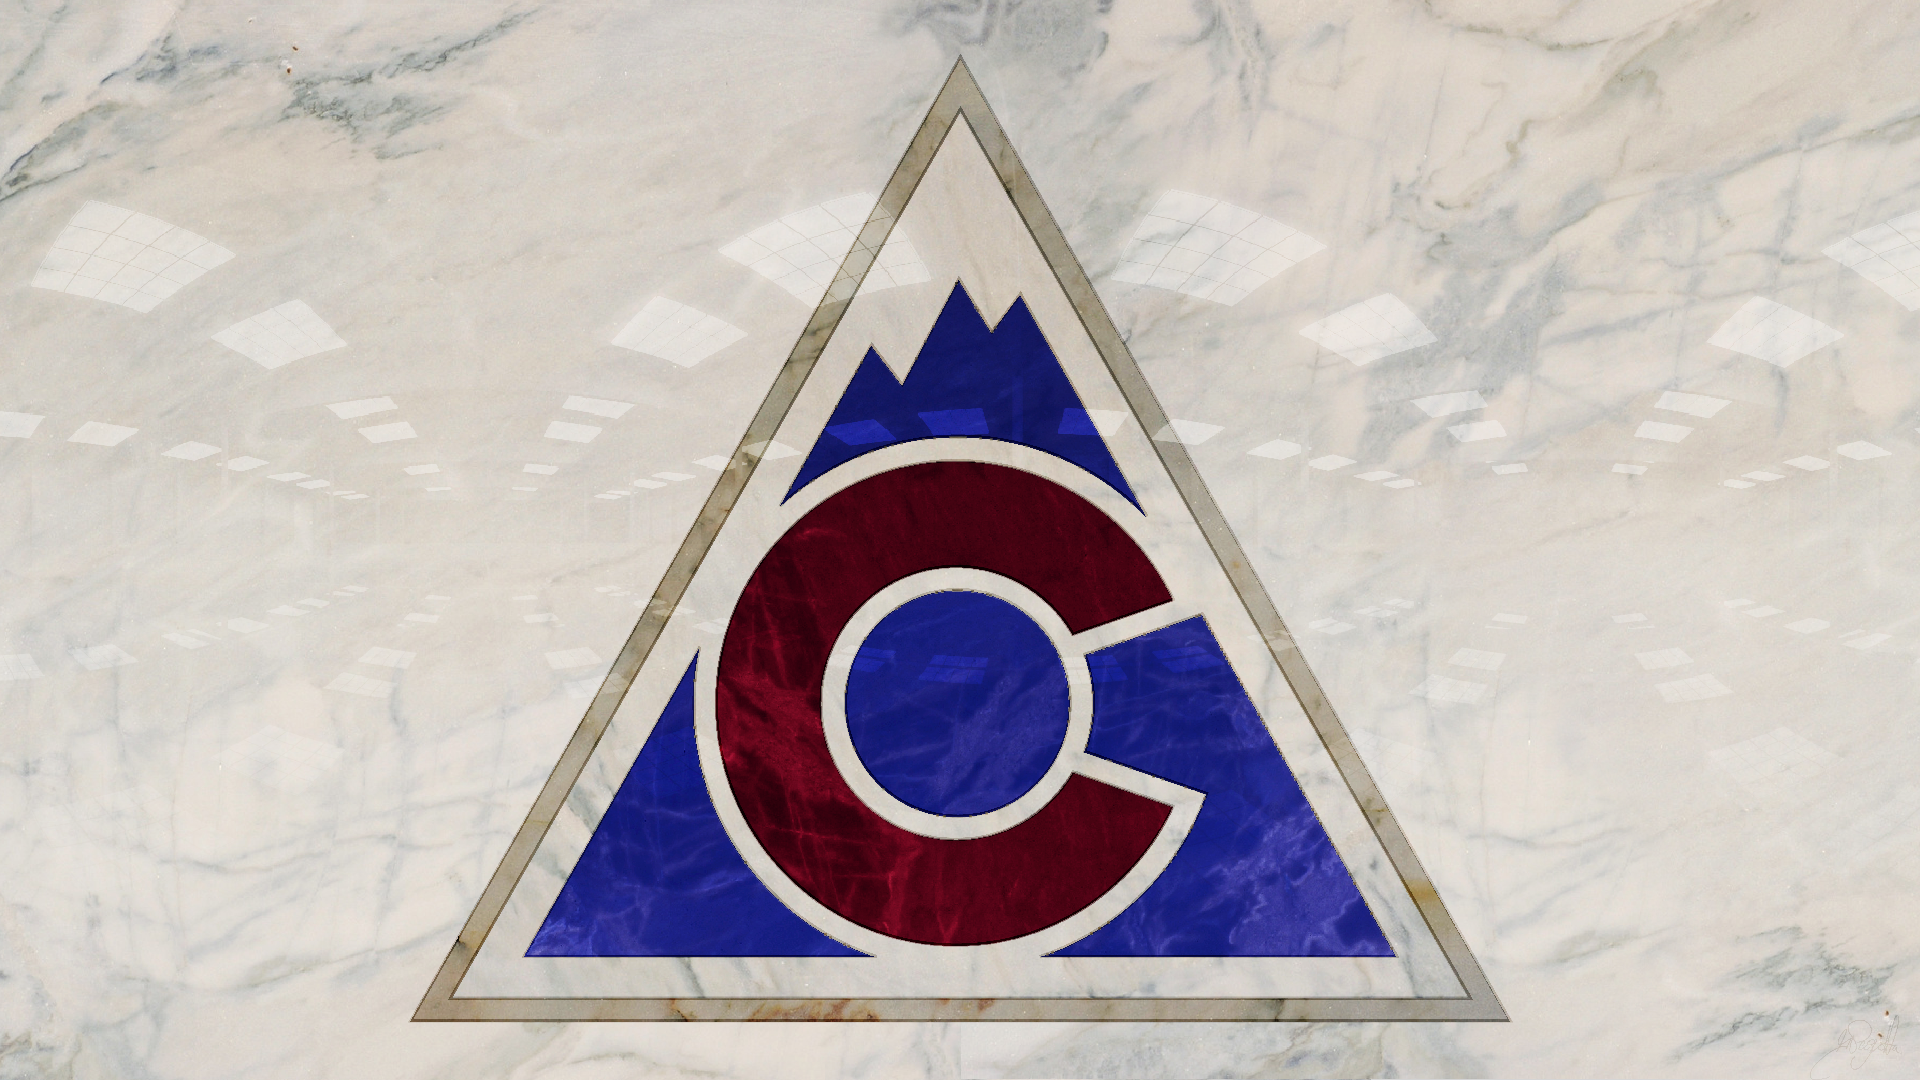 1920x1080 - Colorado Avalanche Wallpapers 5